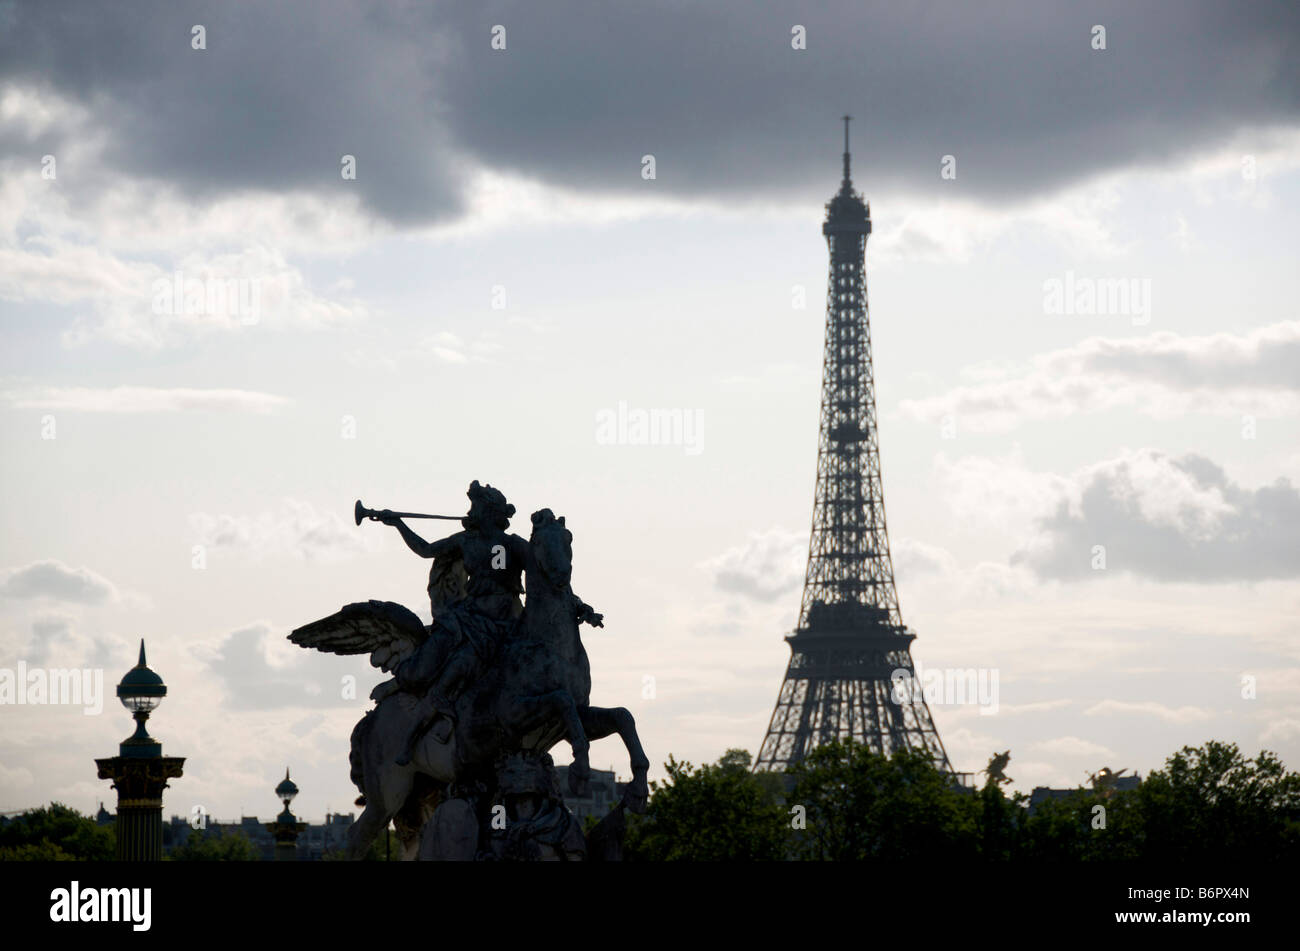 Silhouette de la Tour Eiffel, Paris, France, Europe Photo Stock